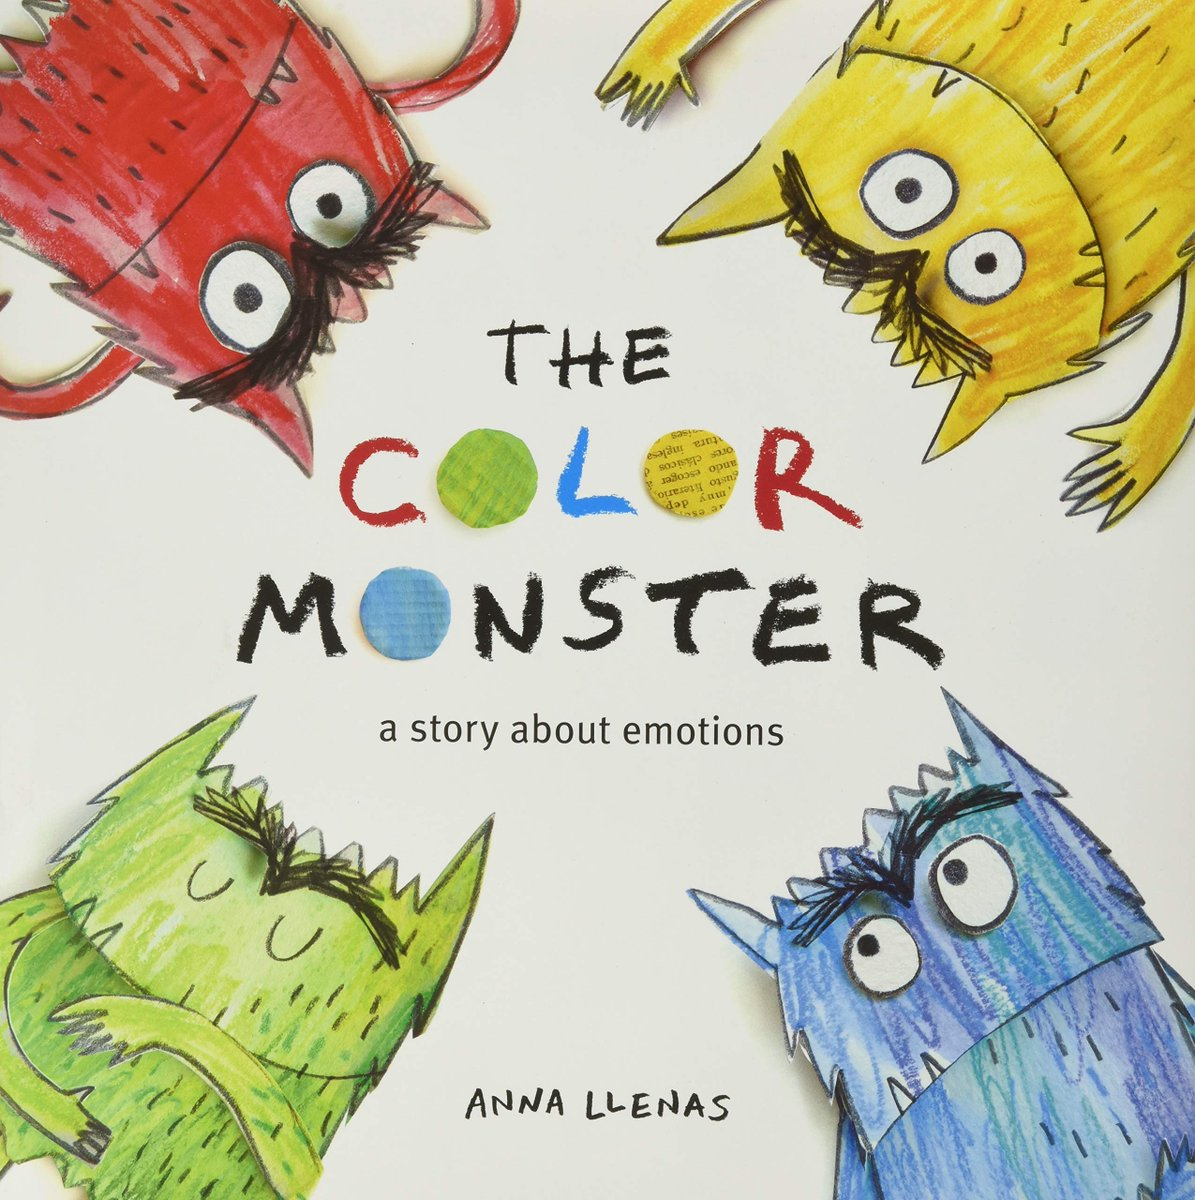 """test Twitter Media - """"Children affected by domestic abuse often present as confused and conflicted with their emotions. This book helps them to understand emotions and talk about what makes them feel these ways.""""  Find more about @FortaliceBolton's favourite book on our blog! https://t.co/ZYeiiidusx https://t.co/MHqQL1tJke"""